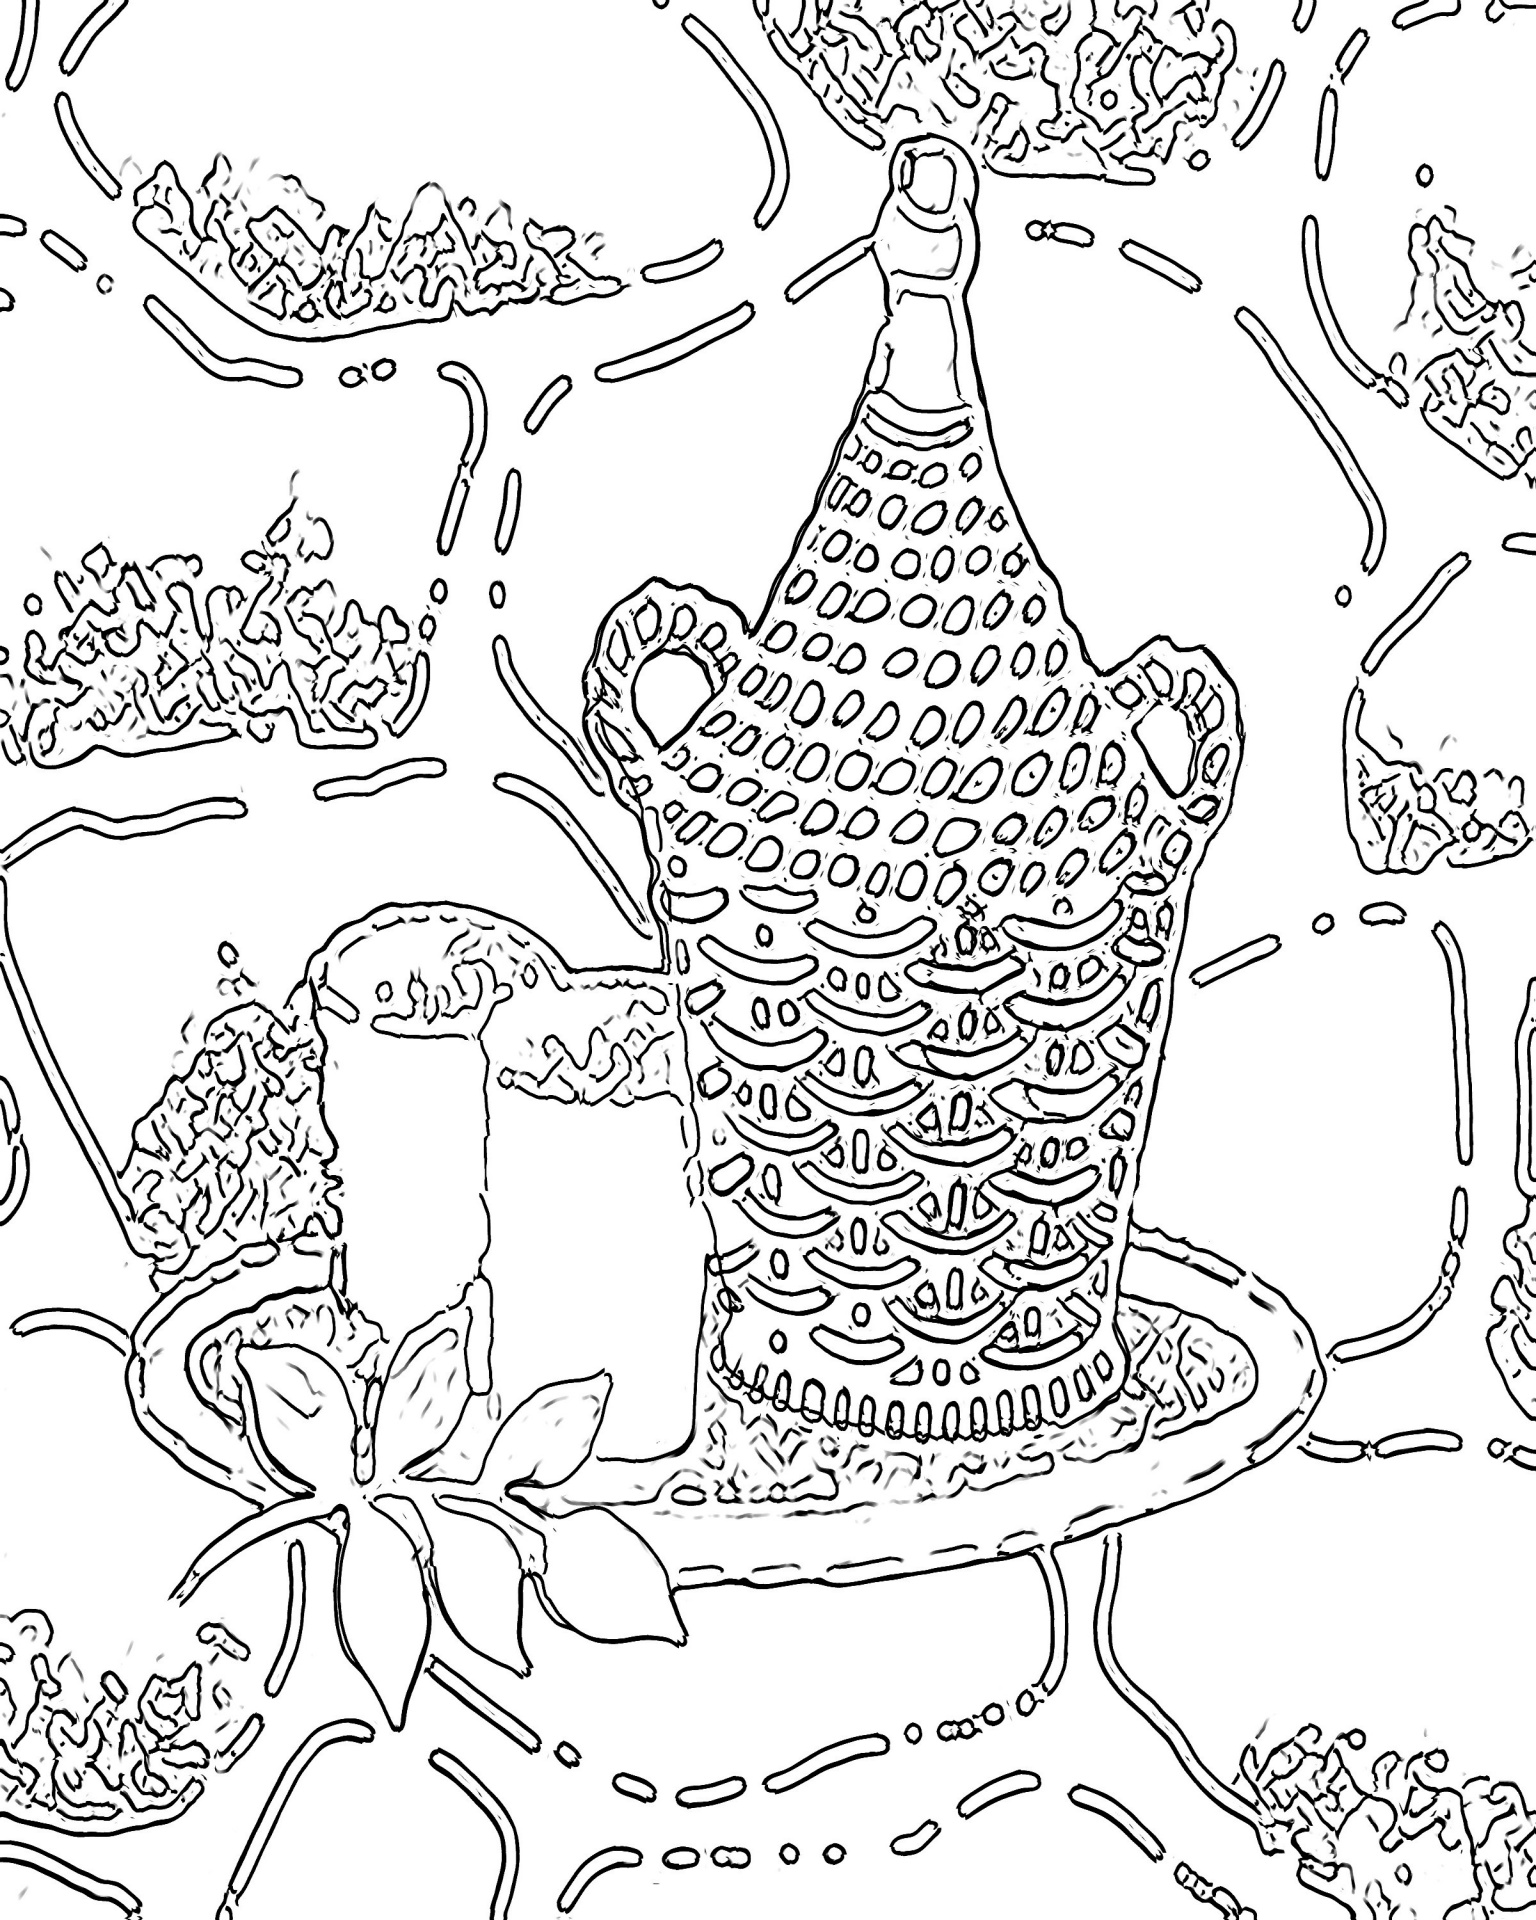 coloring templates for adults floral coloring pages for adults best coloring pages for adults templates coloring for